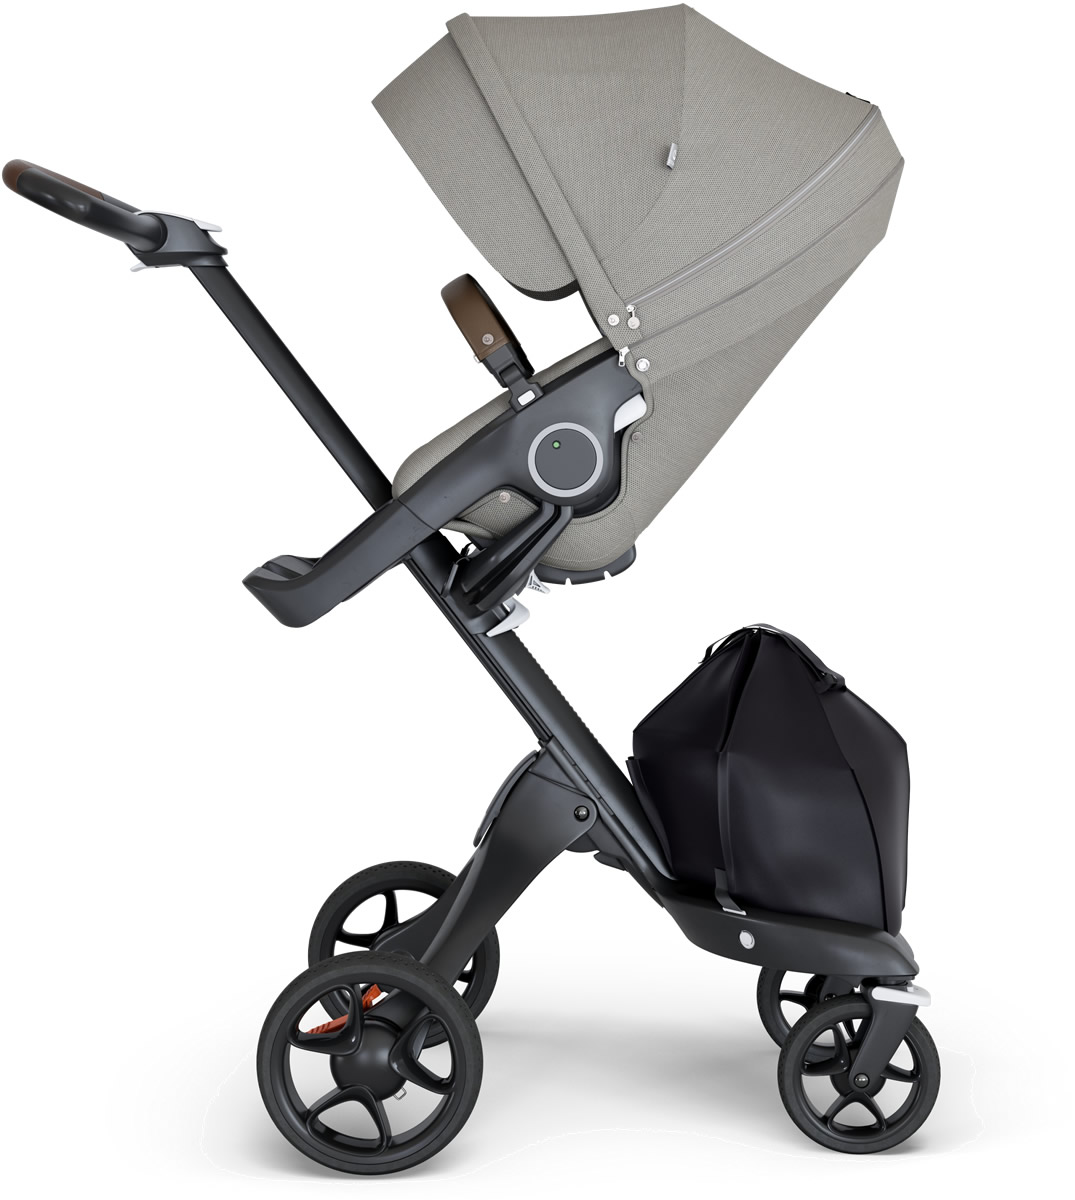 Stokke V6 Xplory Stroller - Brushed Grey/Black/Brown